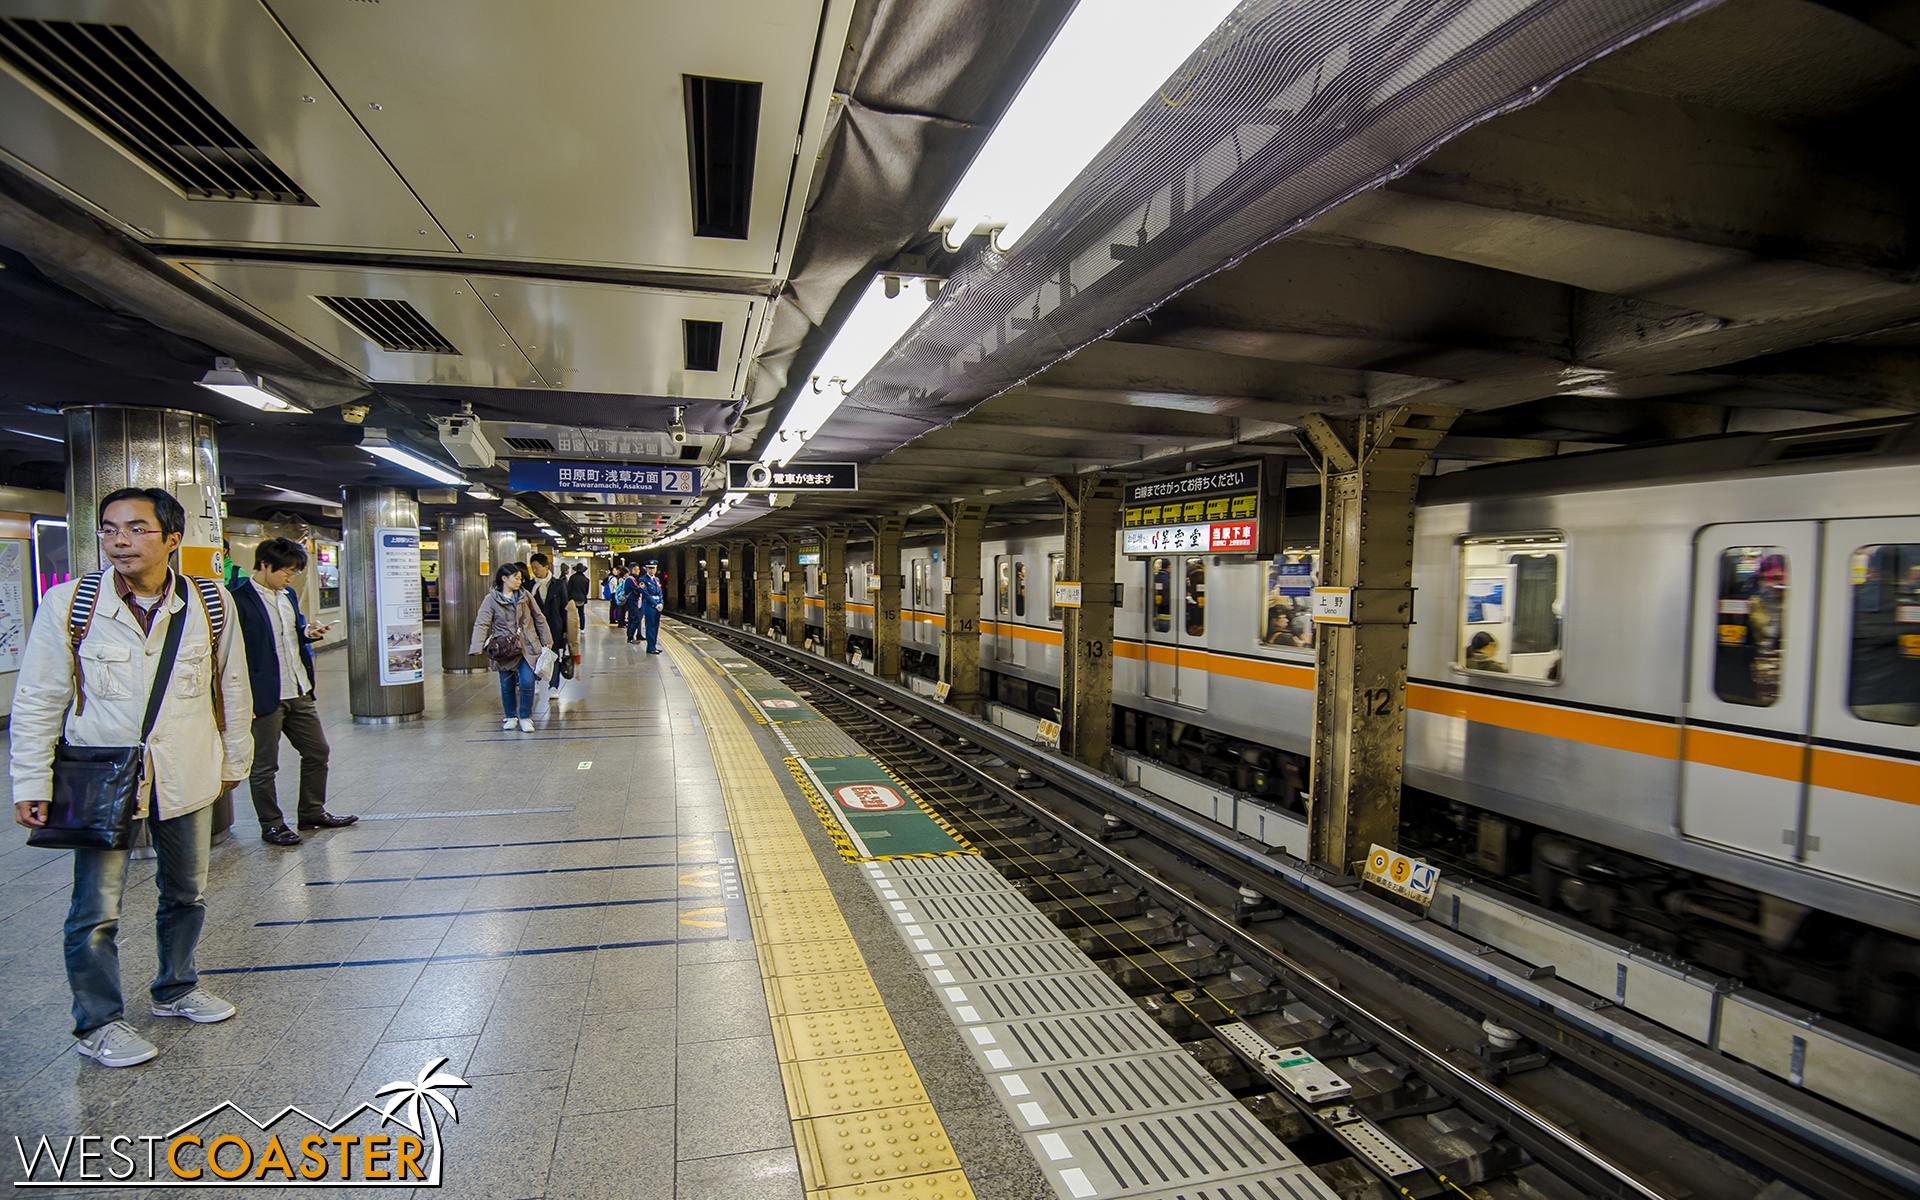 The Tokyo subway system is the most comprehensive and inter-connected in the world.